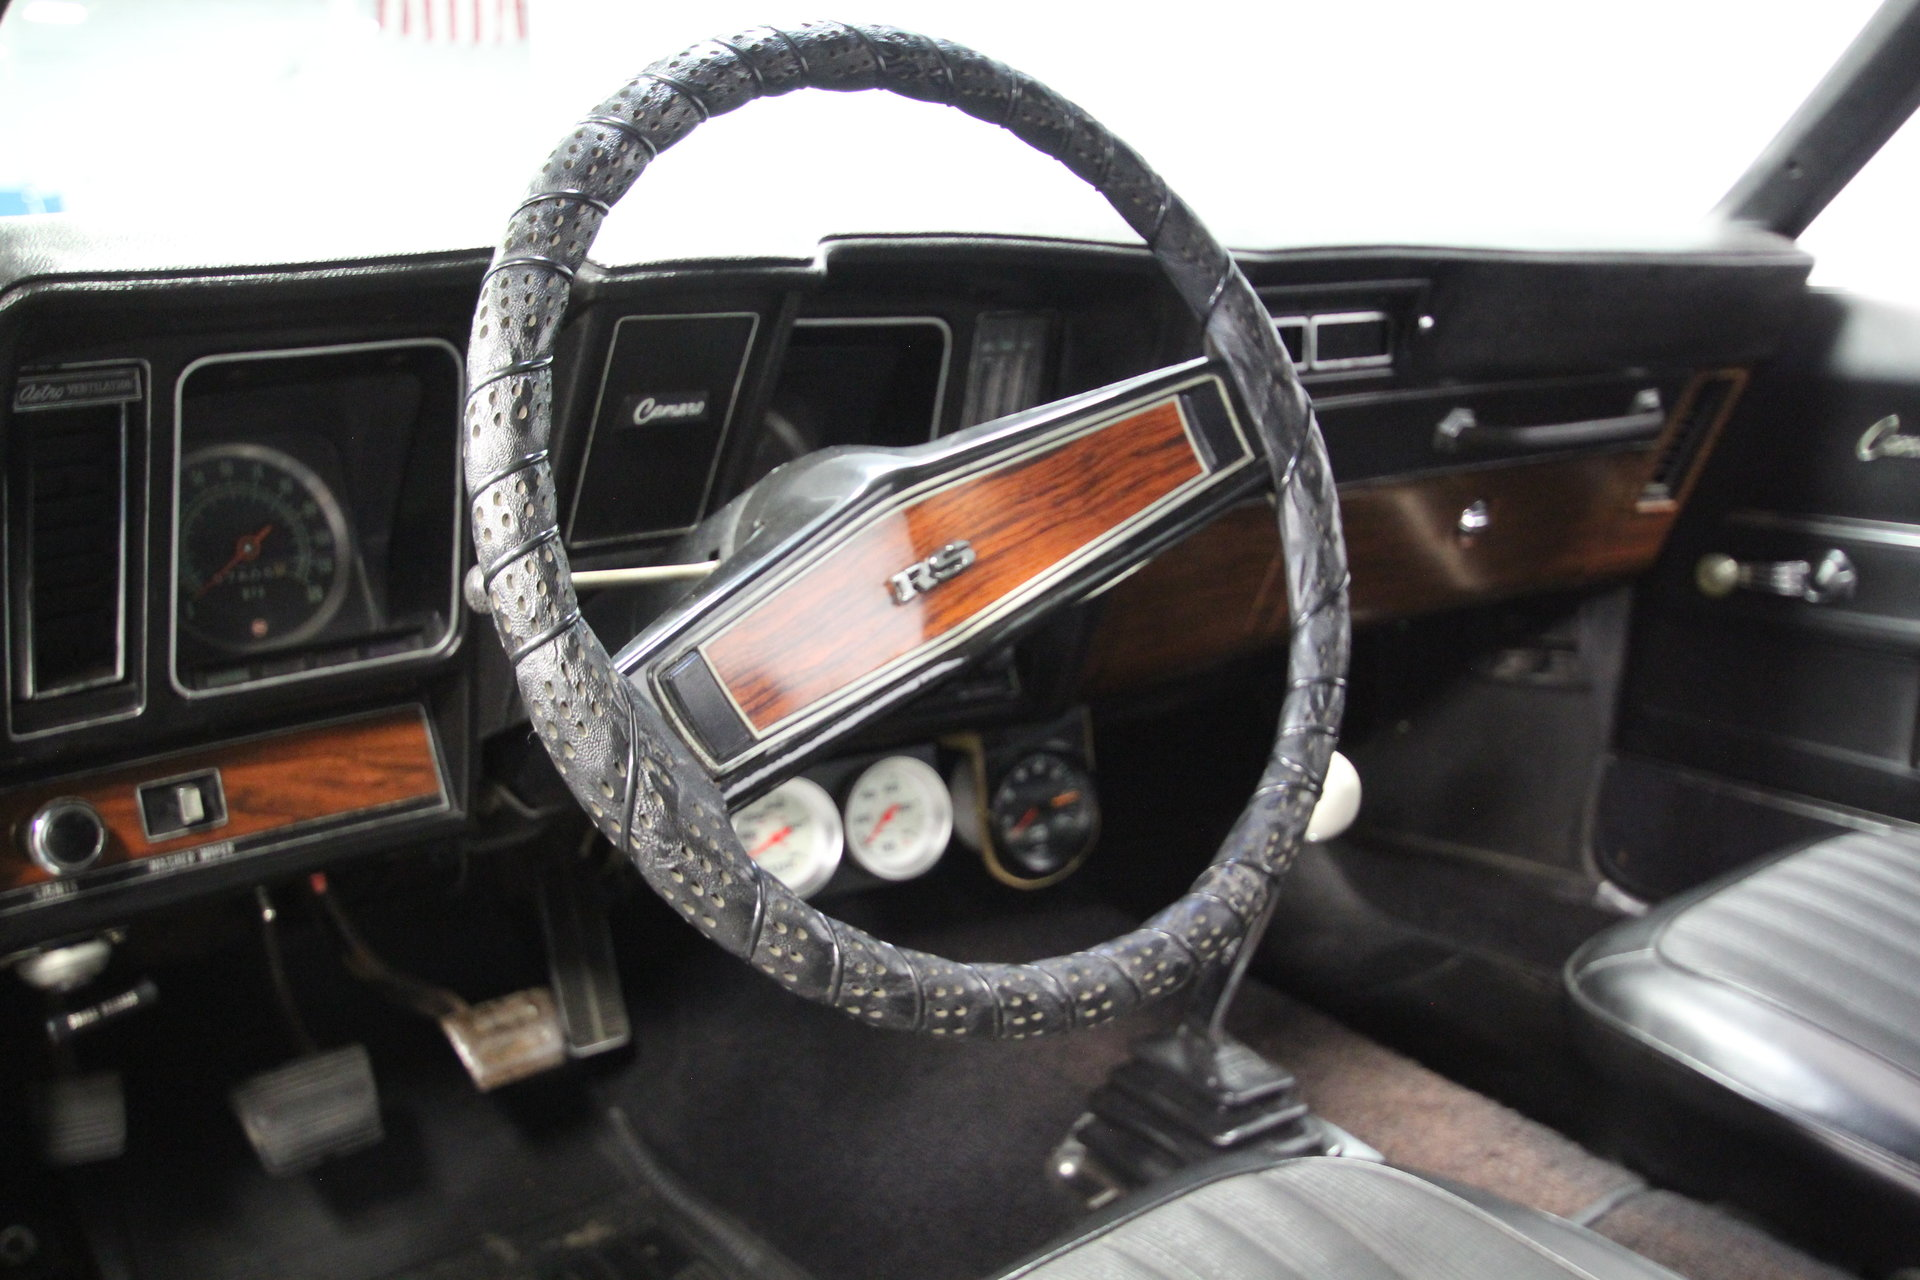 1969 Chevrolet Camaro Streetside Classics The Nations Trusted 69 Tach Wiring Diagram View 360